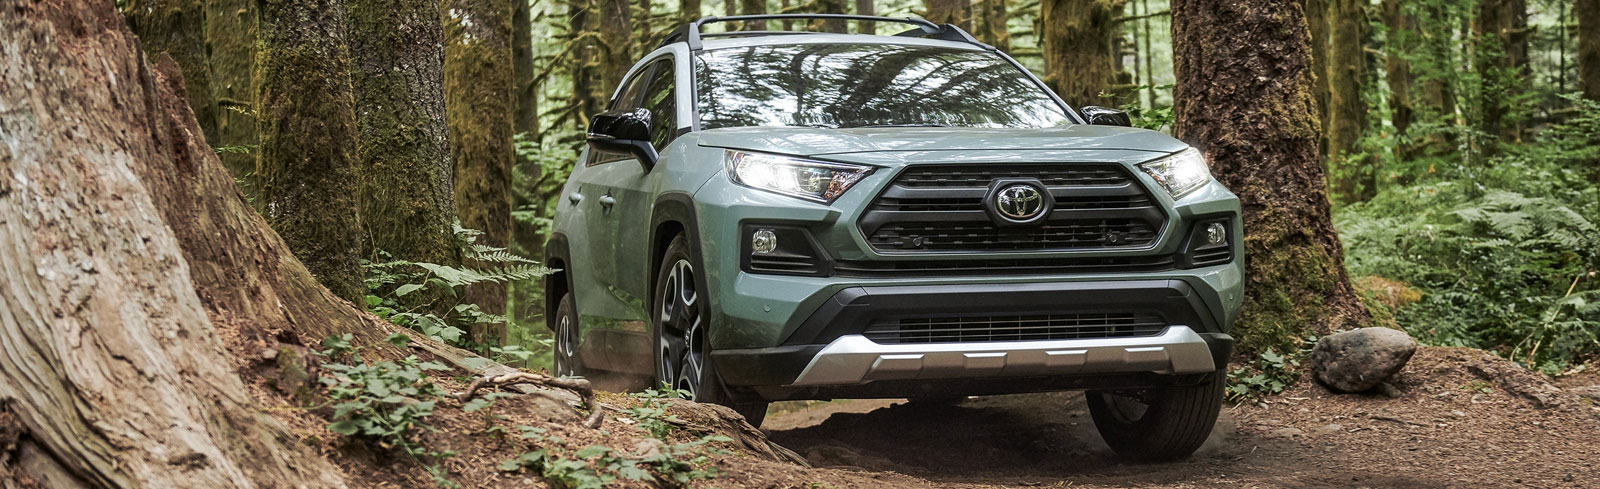 All New 2020 Toyota RAV4 for Sale at Future Toyota of Yuba City